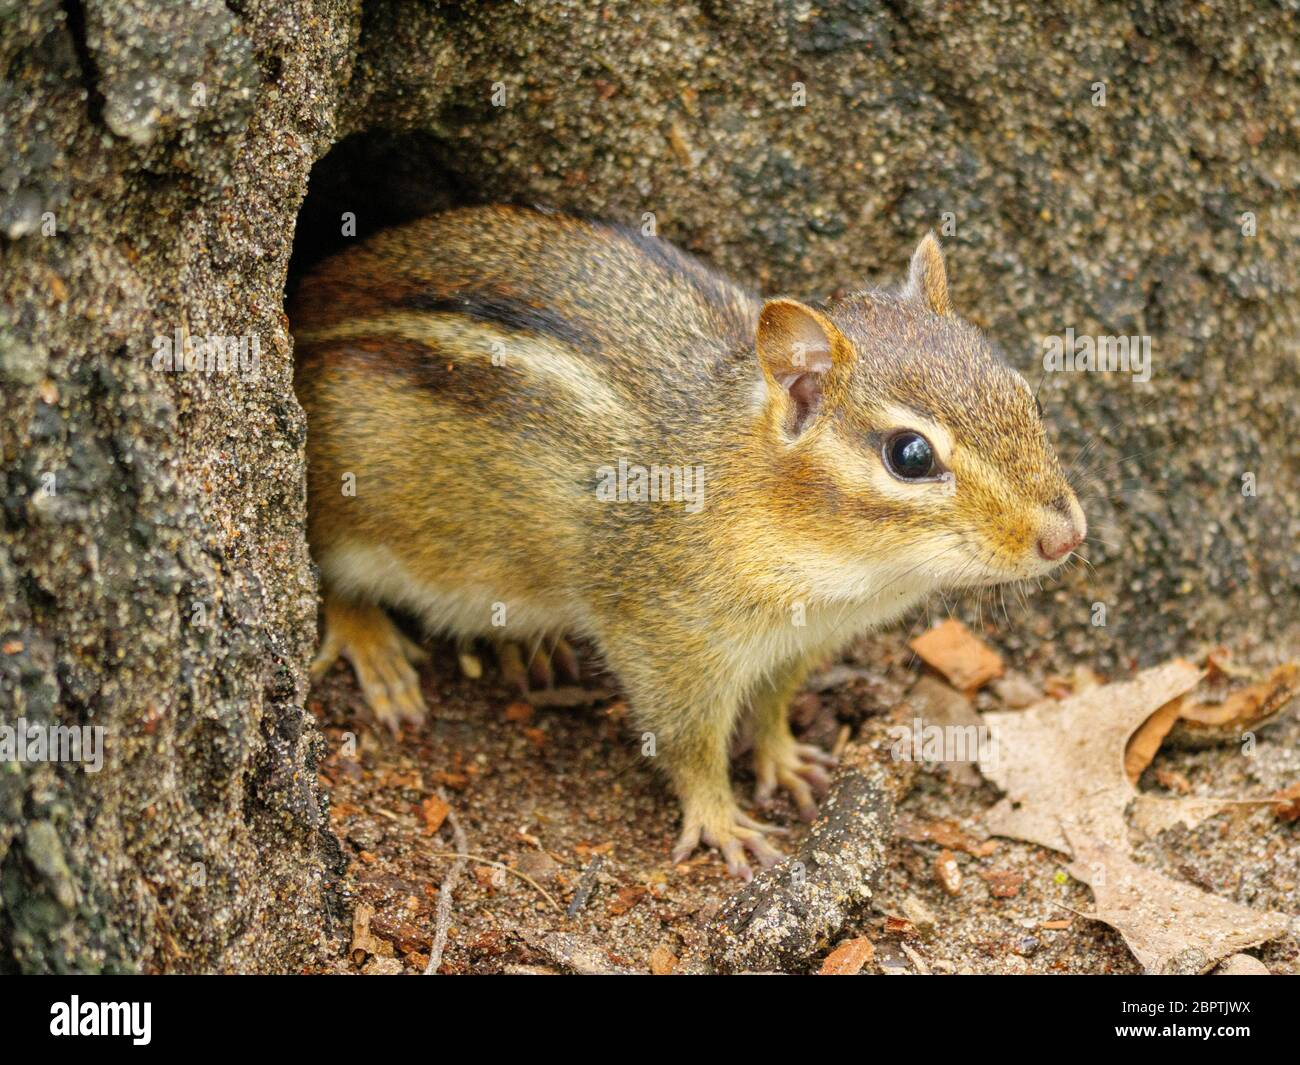 An eastern chipmunk emerges from its hole at the base of a tree. Thatcher Woods Forest Preserve, Cook County, Illinois. Stock Photo